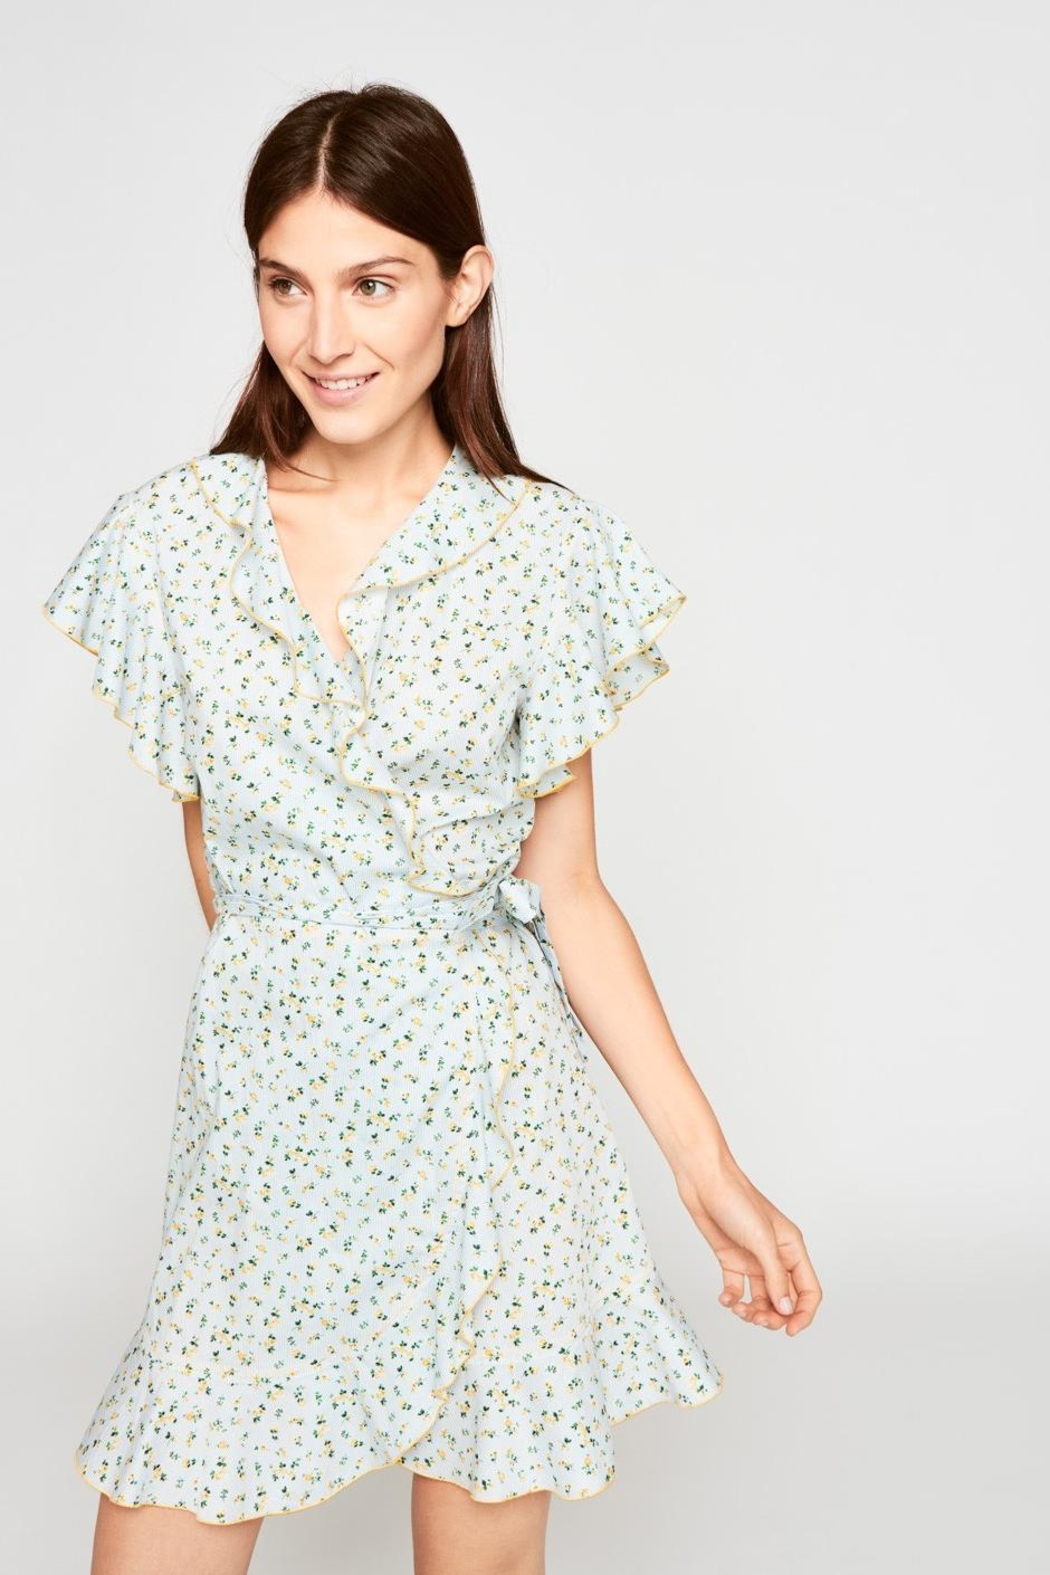 Tara Jarmon Floral Ruffled Dress - Front Cropped Image